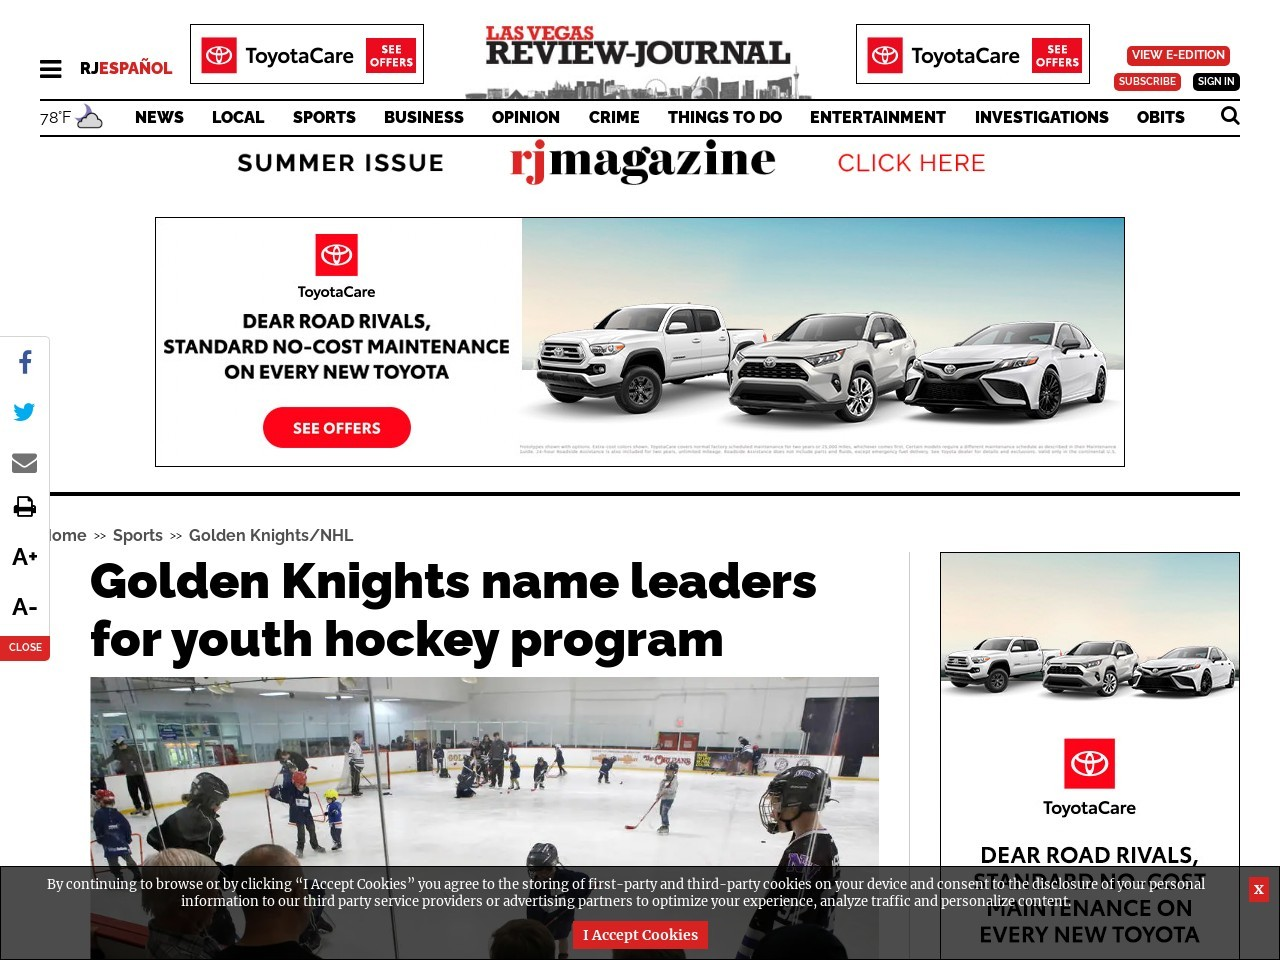 Golden Knights name leaders for youth hockey program